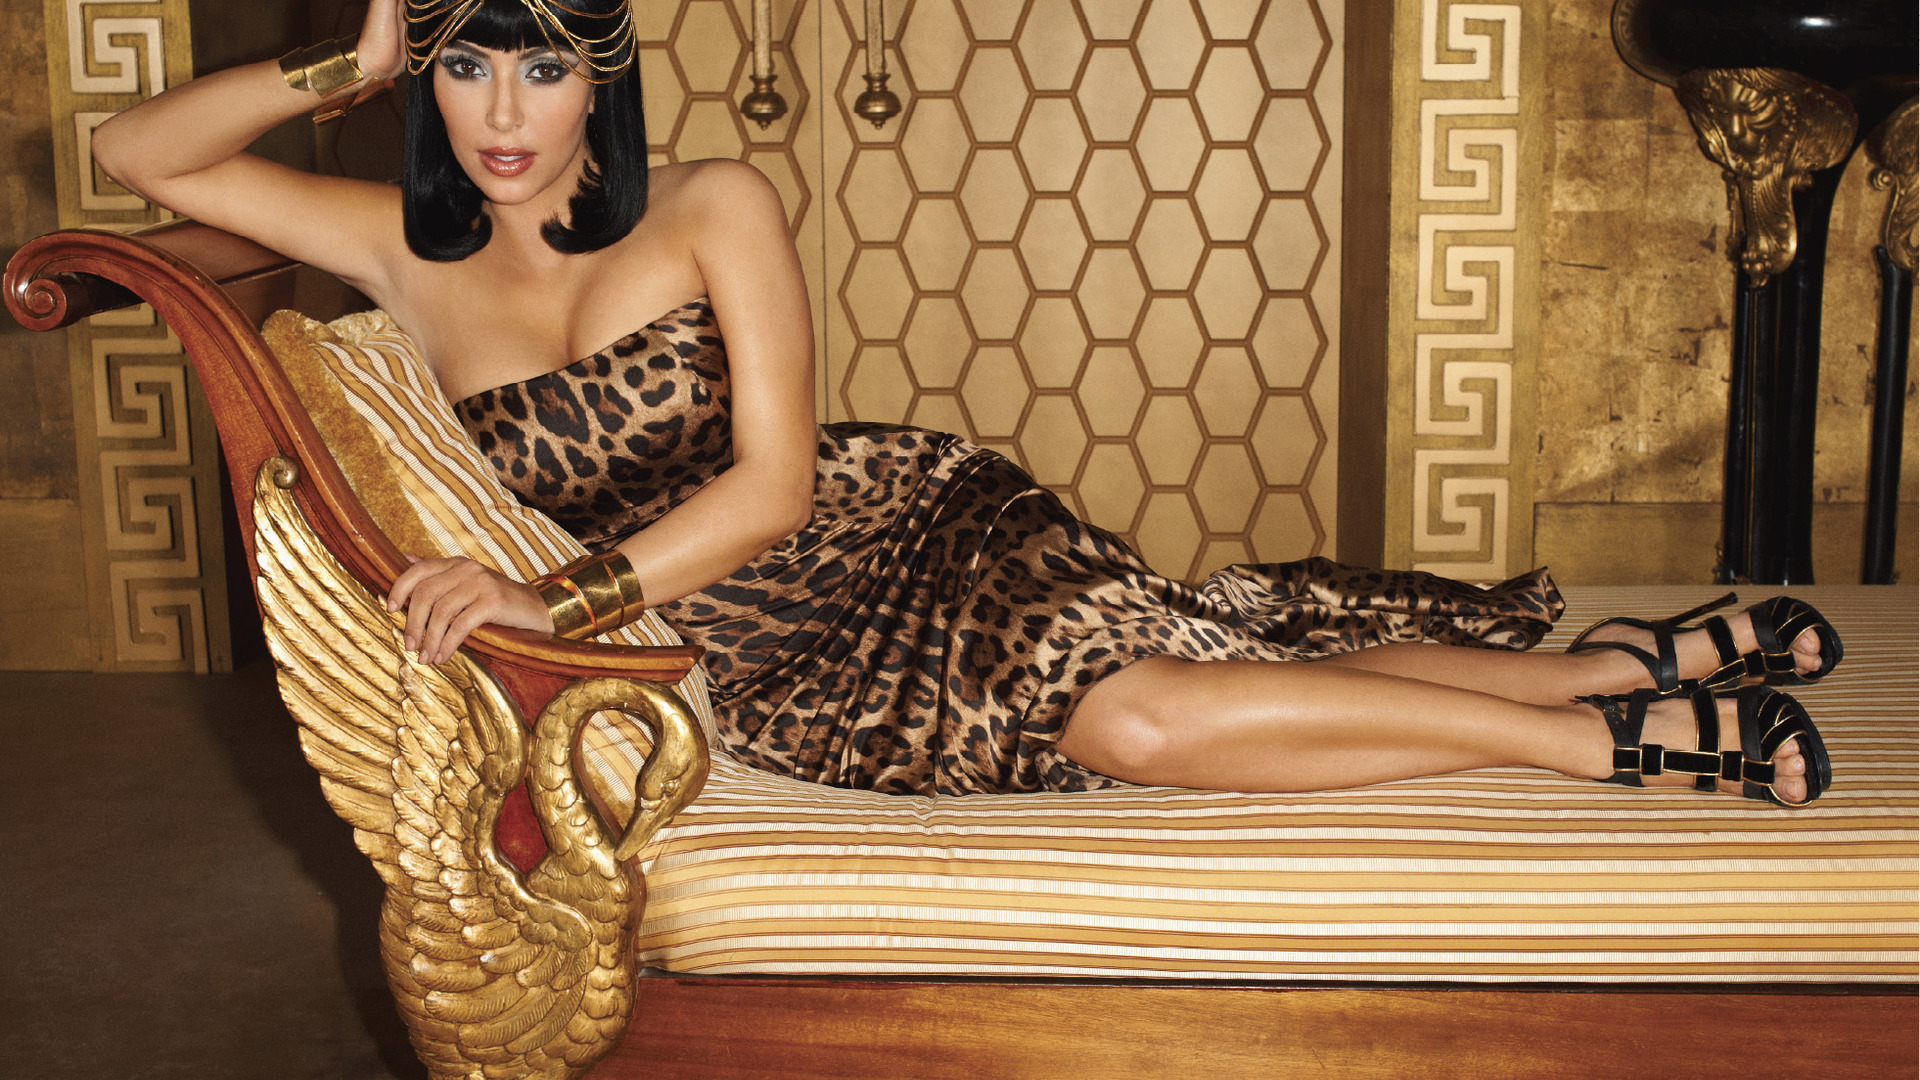 Kim Kardashian As Cleopatra Wallpaper Free Download 1920x1080px